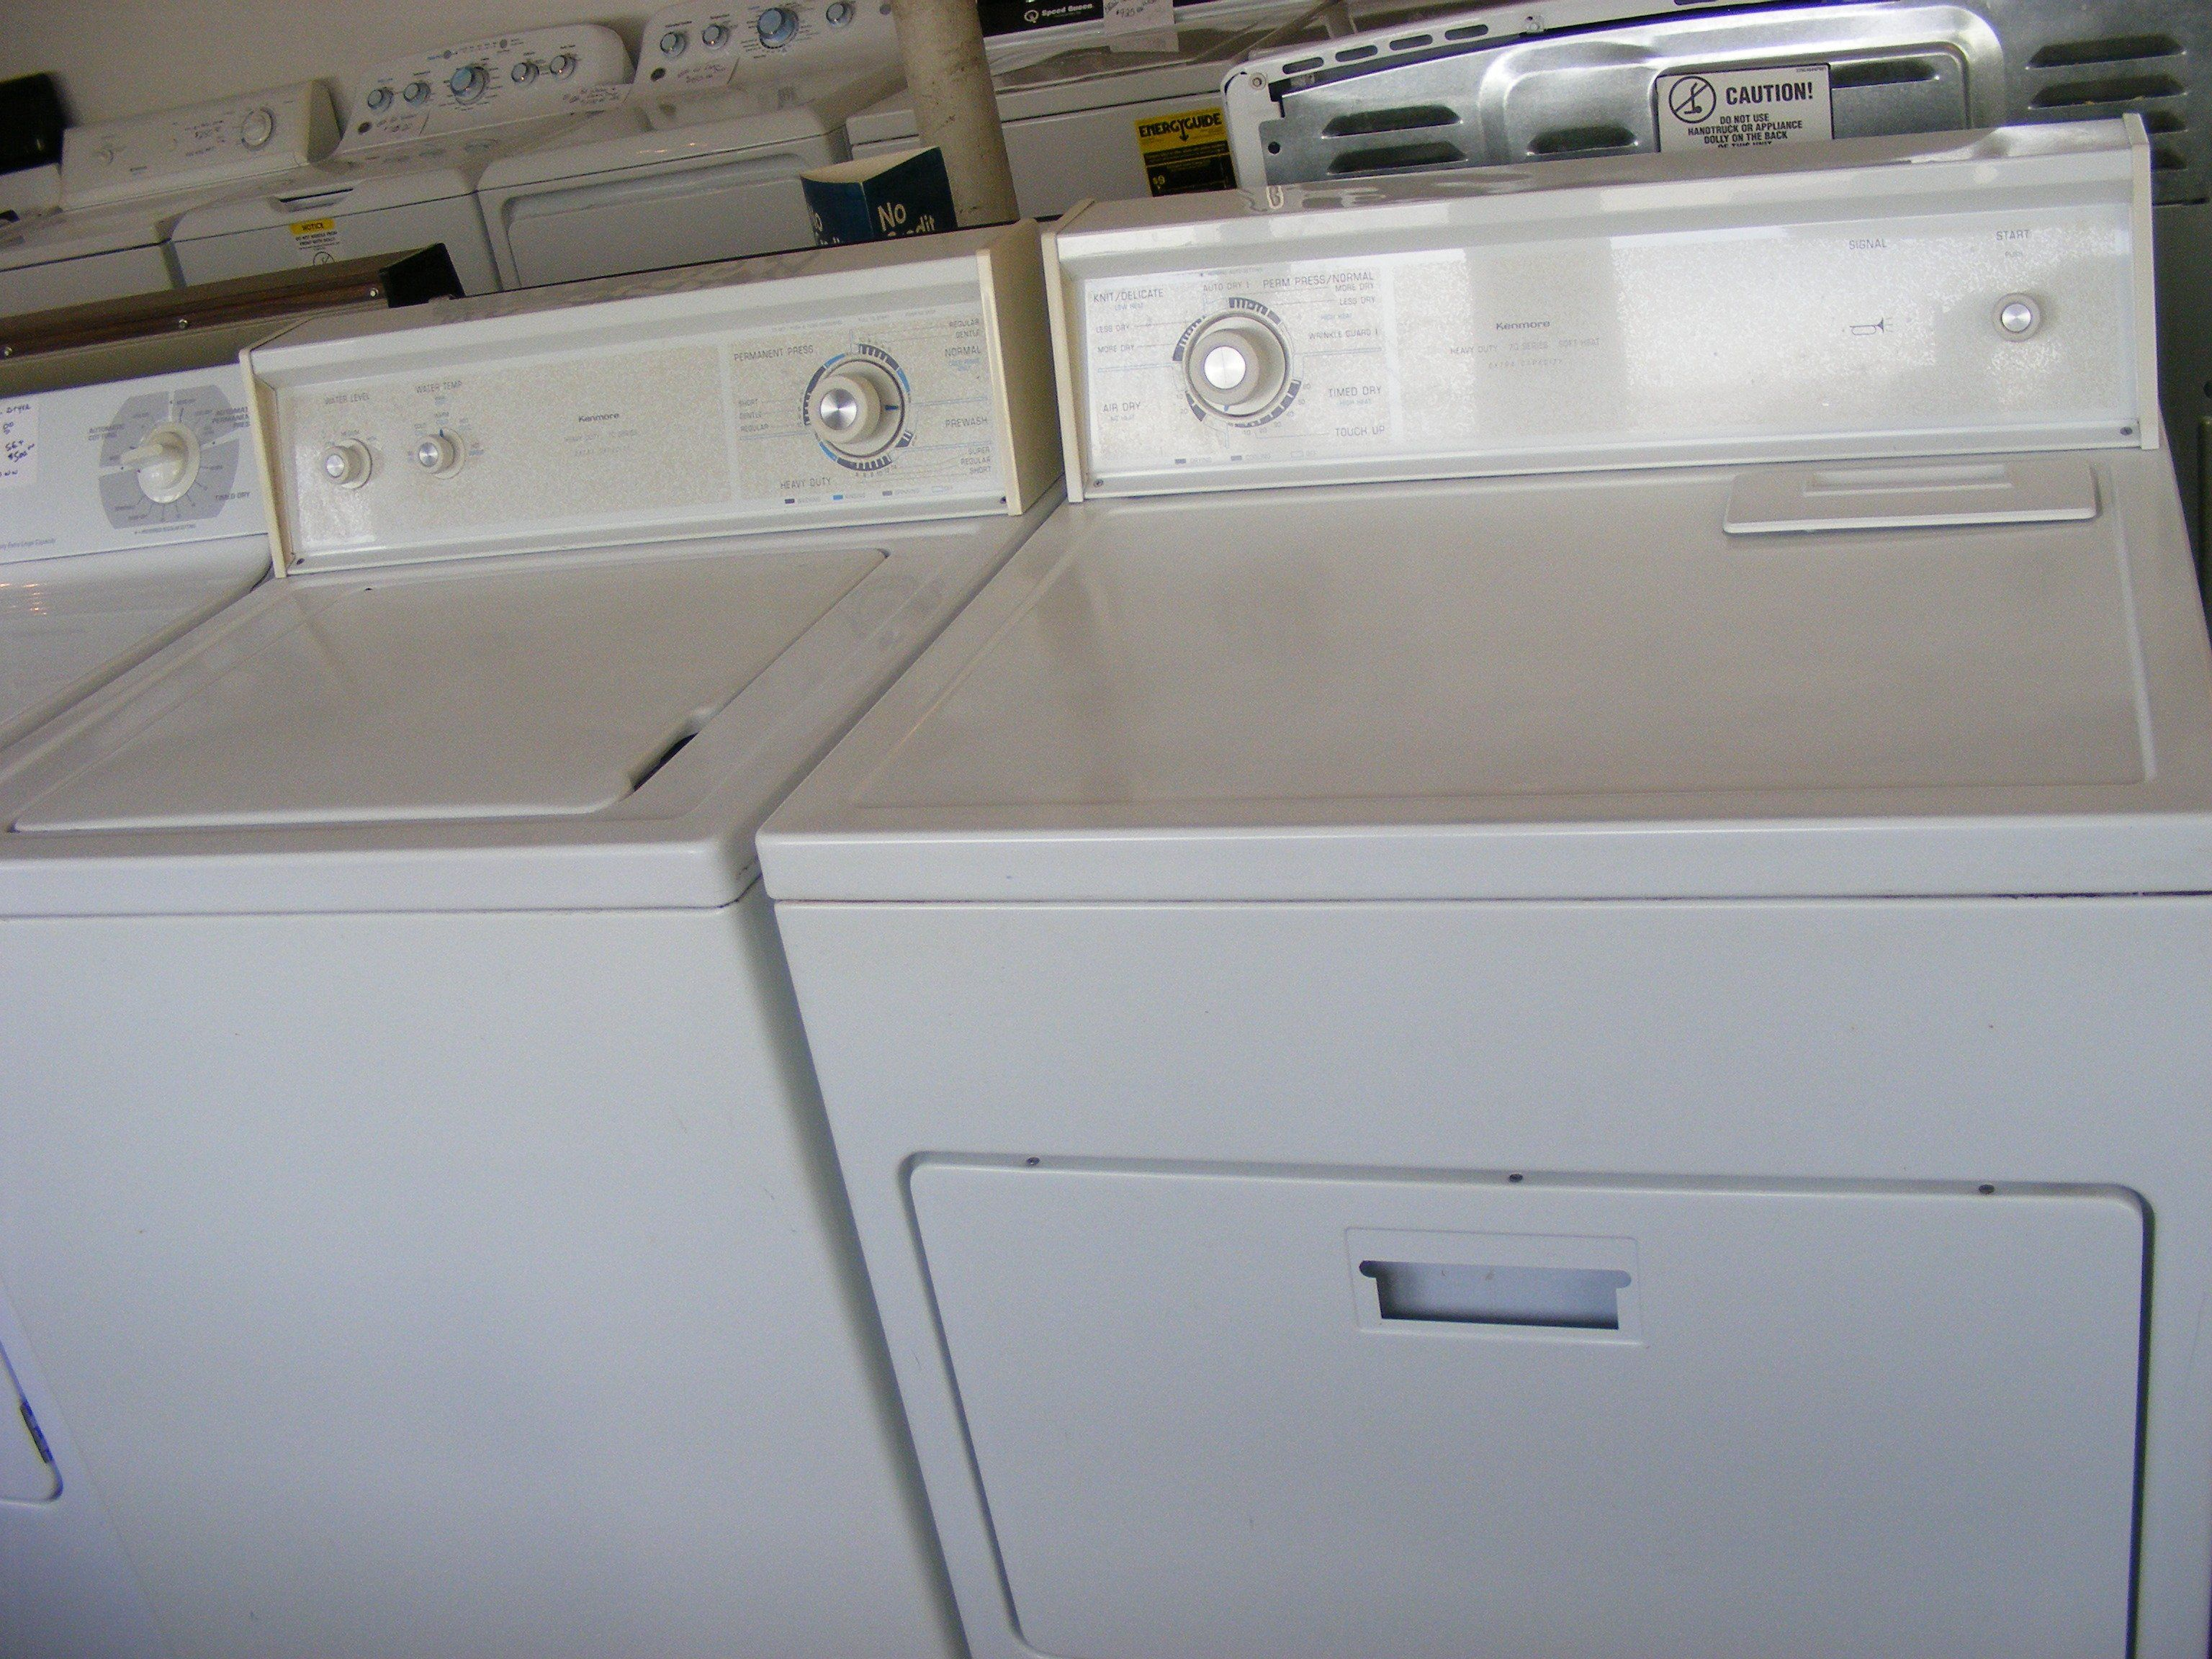 Used Reconditioned White Kenmore Washer And Dryer Set 11092573210 In 2021 Kenmore Washer Washer And Dryer Best Appliances